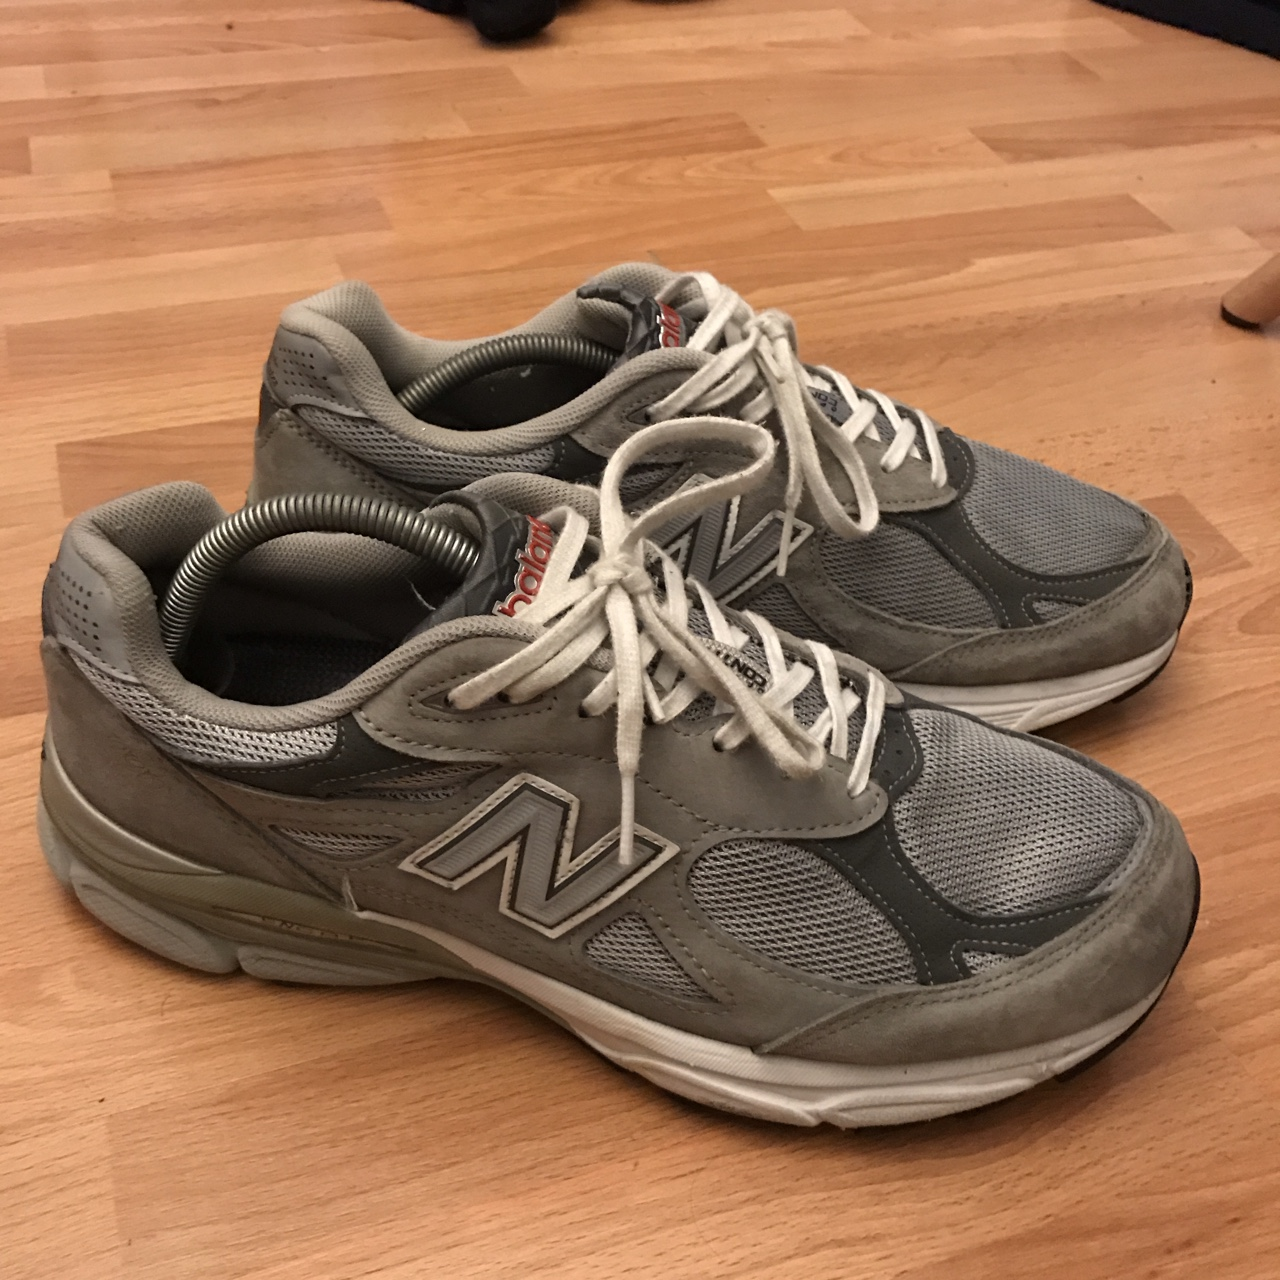 buy online 0a53f 17803 New Balance 990v4 for sale. Great condition! No heel... - Depop